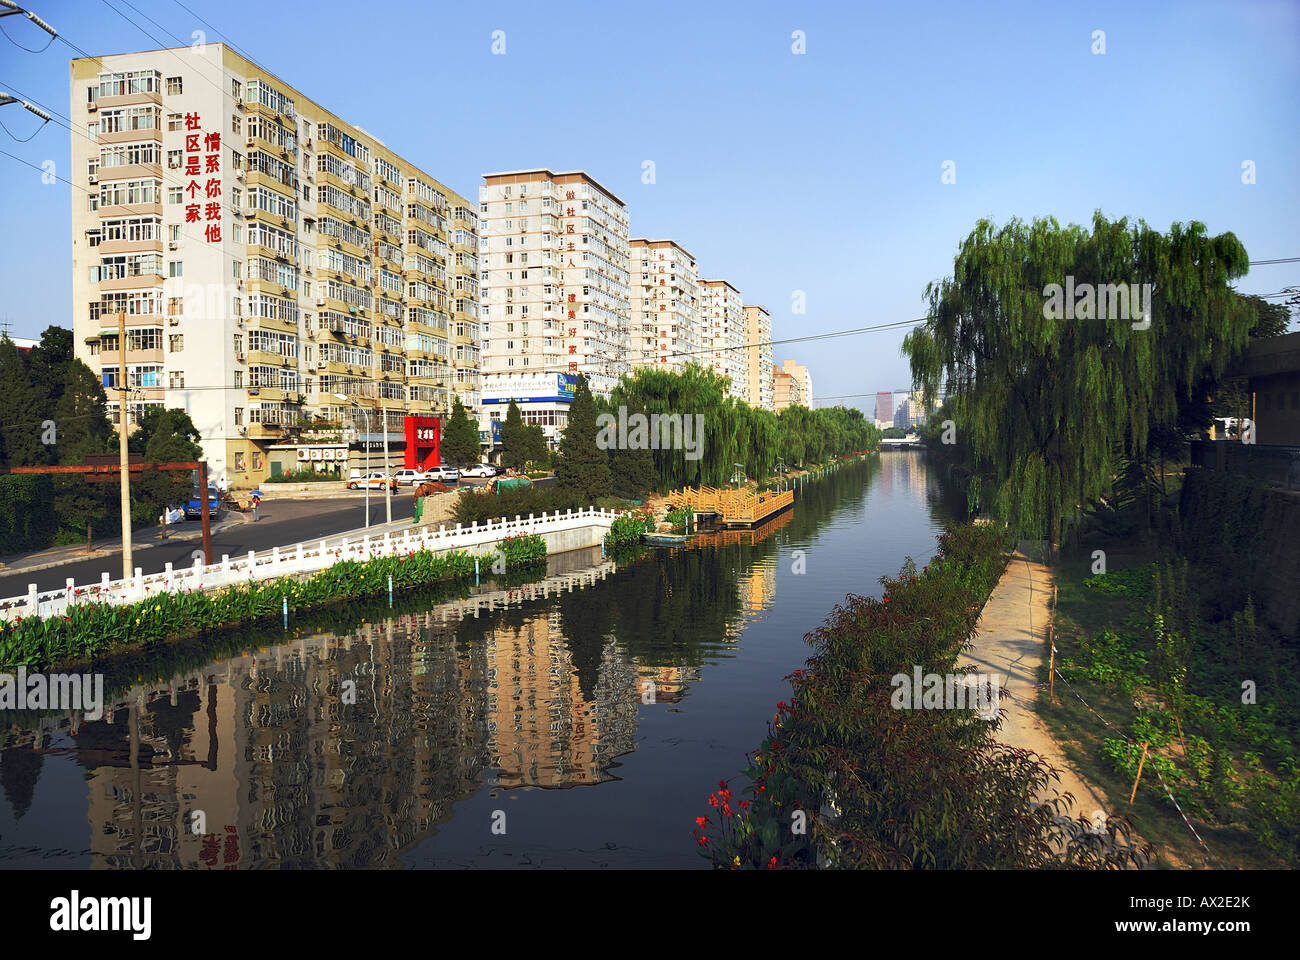 Beijing CHINA, 'New Architecture' Buildings on Renovated Canal Neighborhood cities 'housing development' - Stock Image